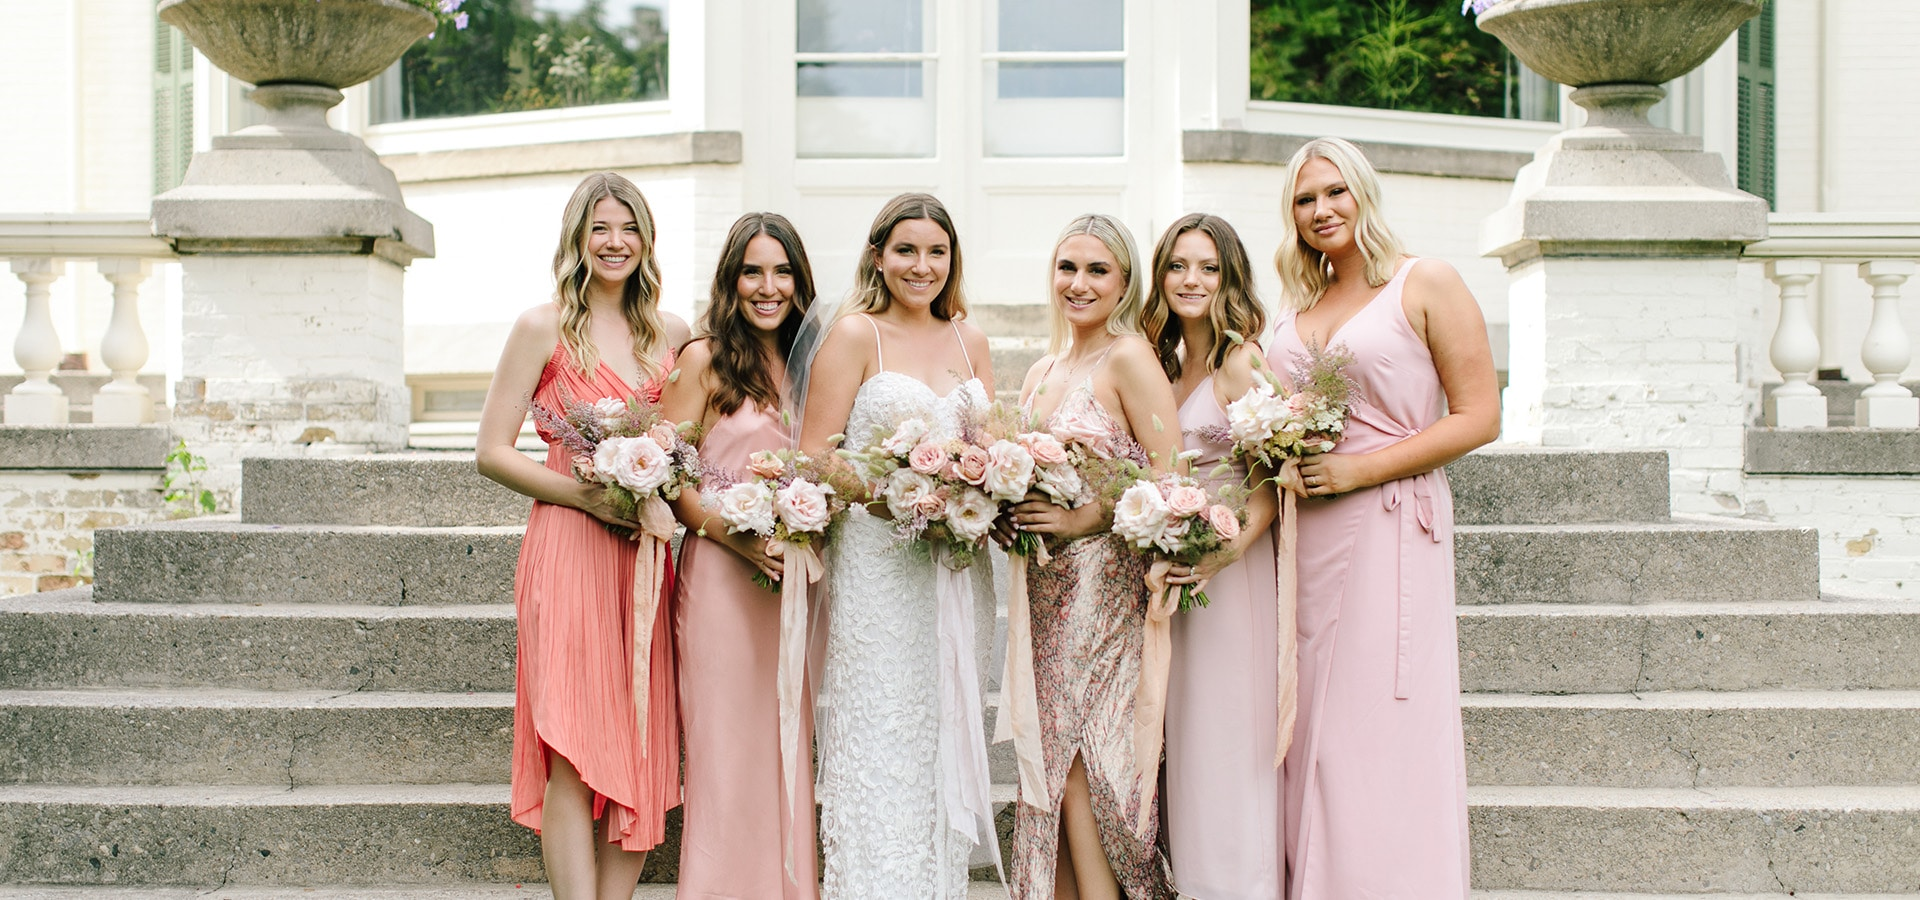 Hero image for 5 Tips to Flawlessly Pull Off Mismatched Bridesmaid Dresses